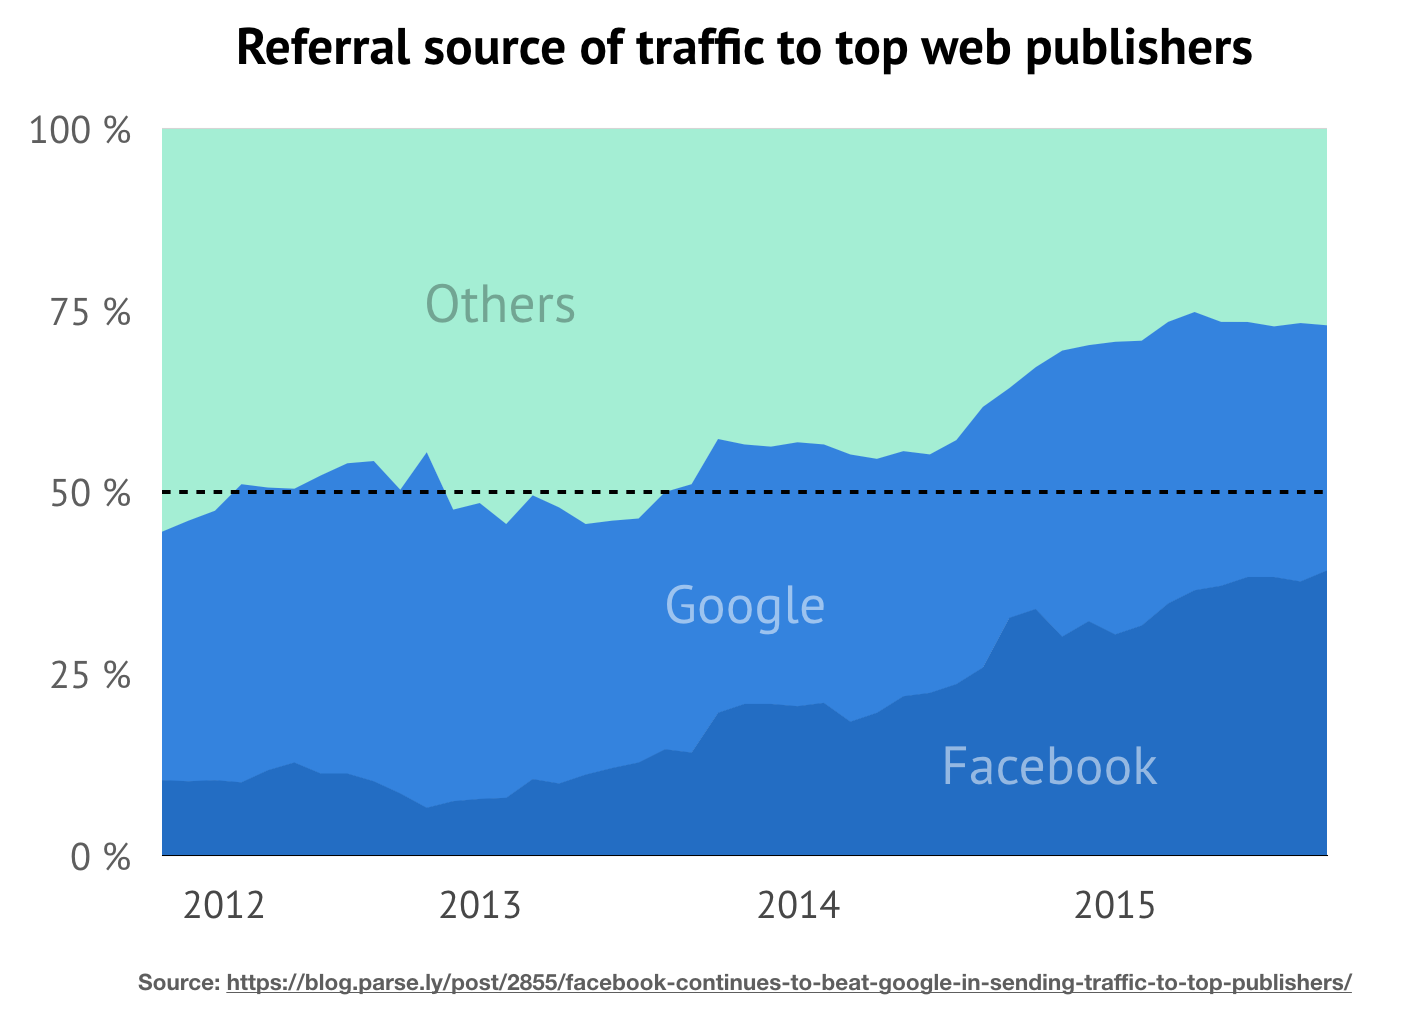 files/images/referral-to-top-publishers_1.png